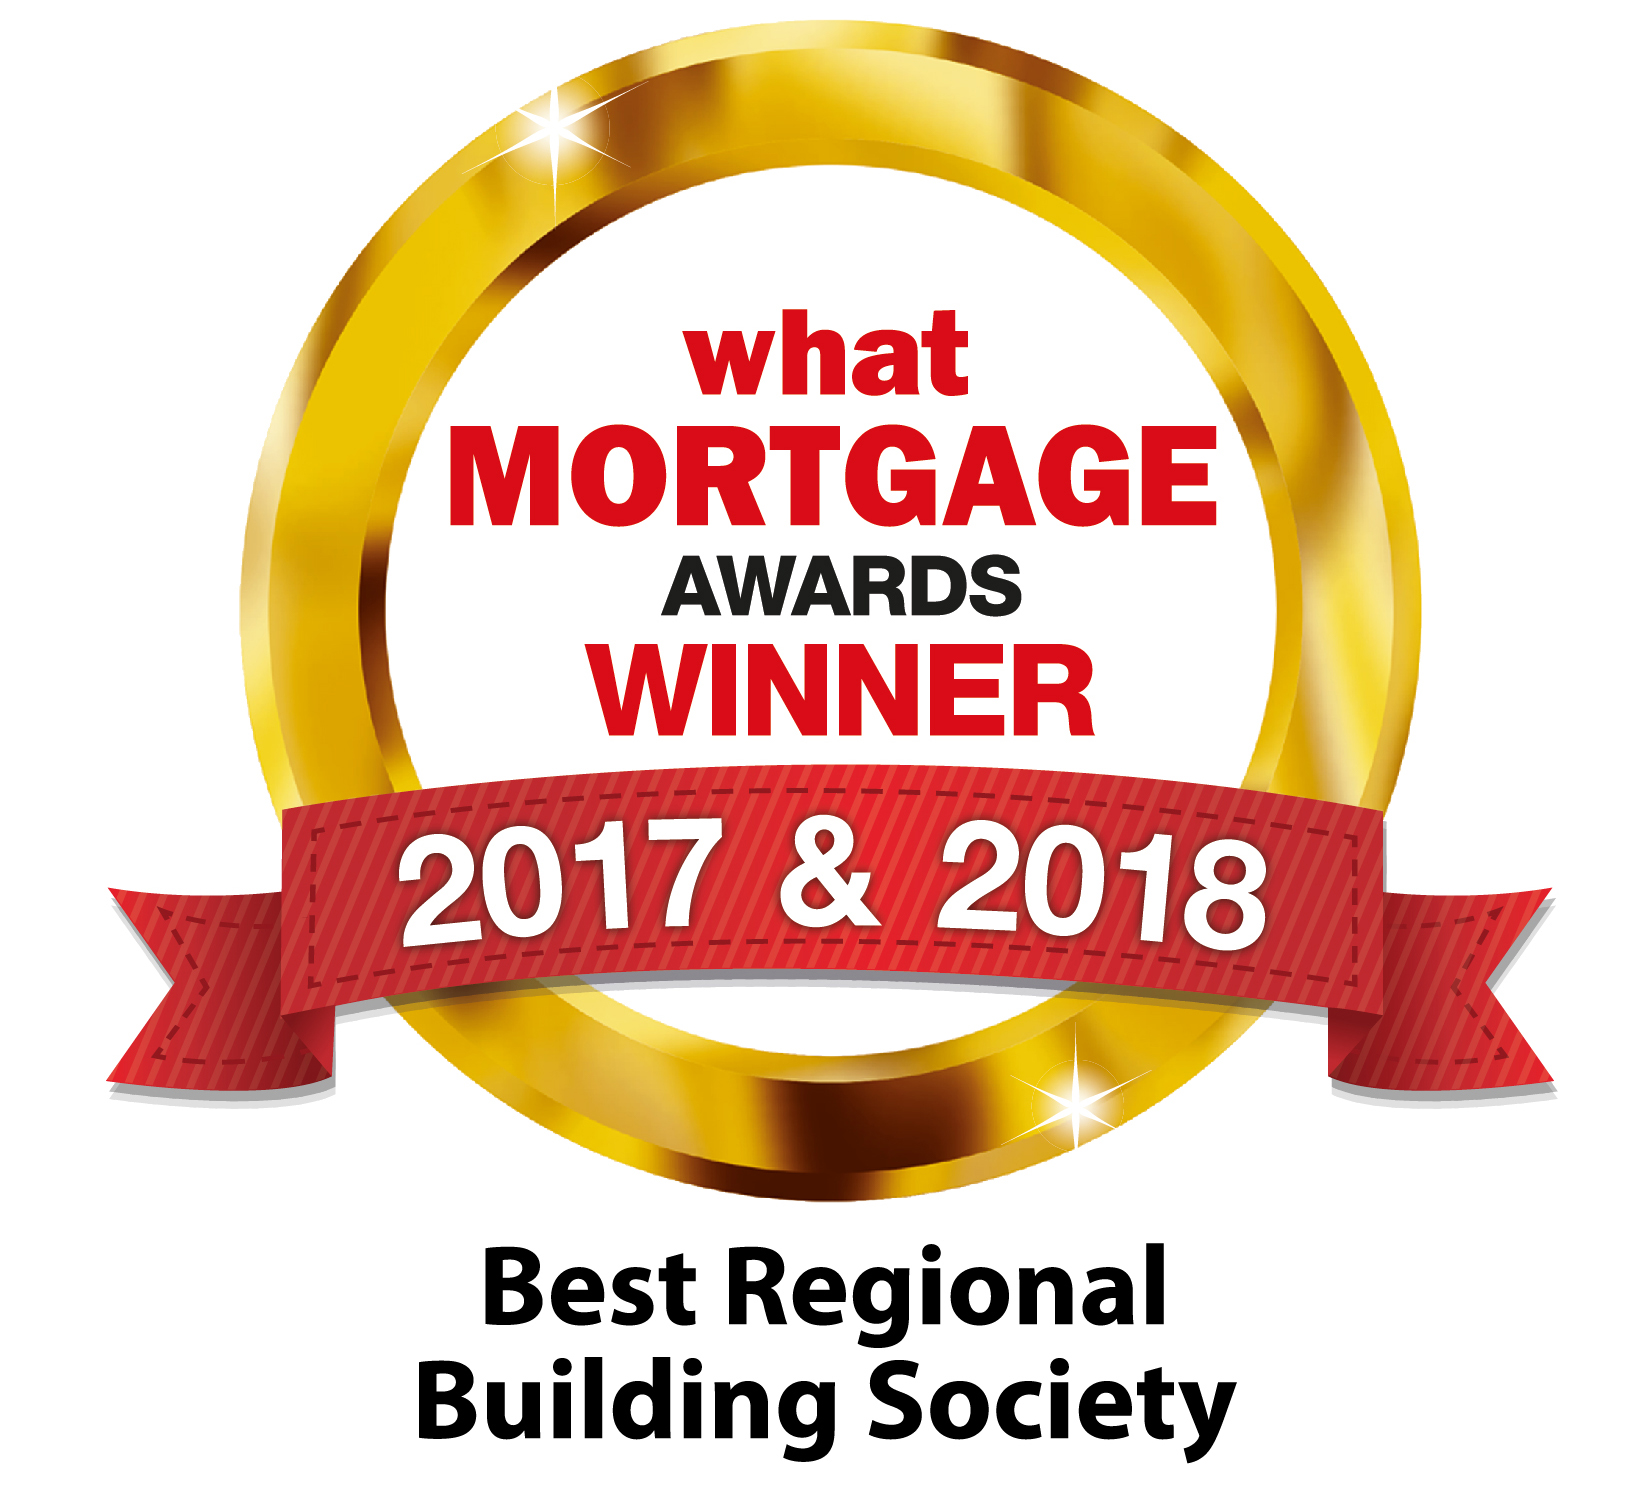 what Mortgage Awards 2018 Winner - Best Regional Building Society